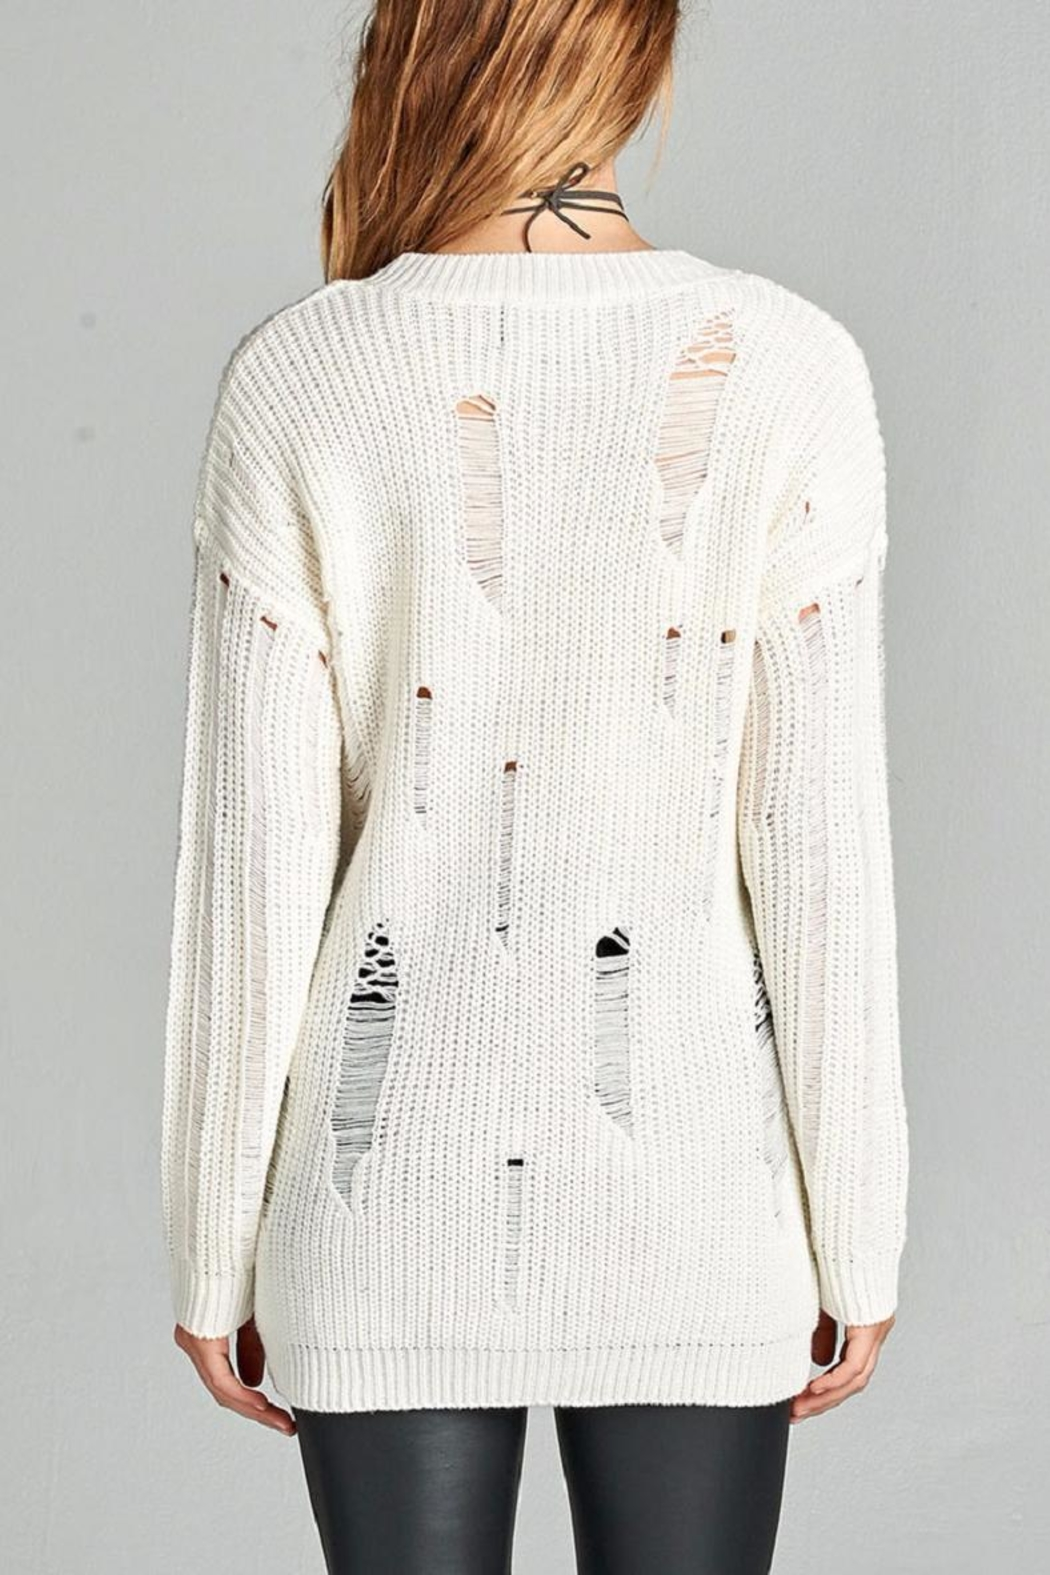 Active Basic Ivory Distressed Sweater - Side Cropped Image